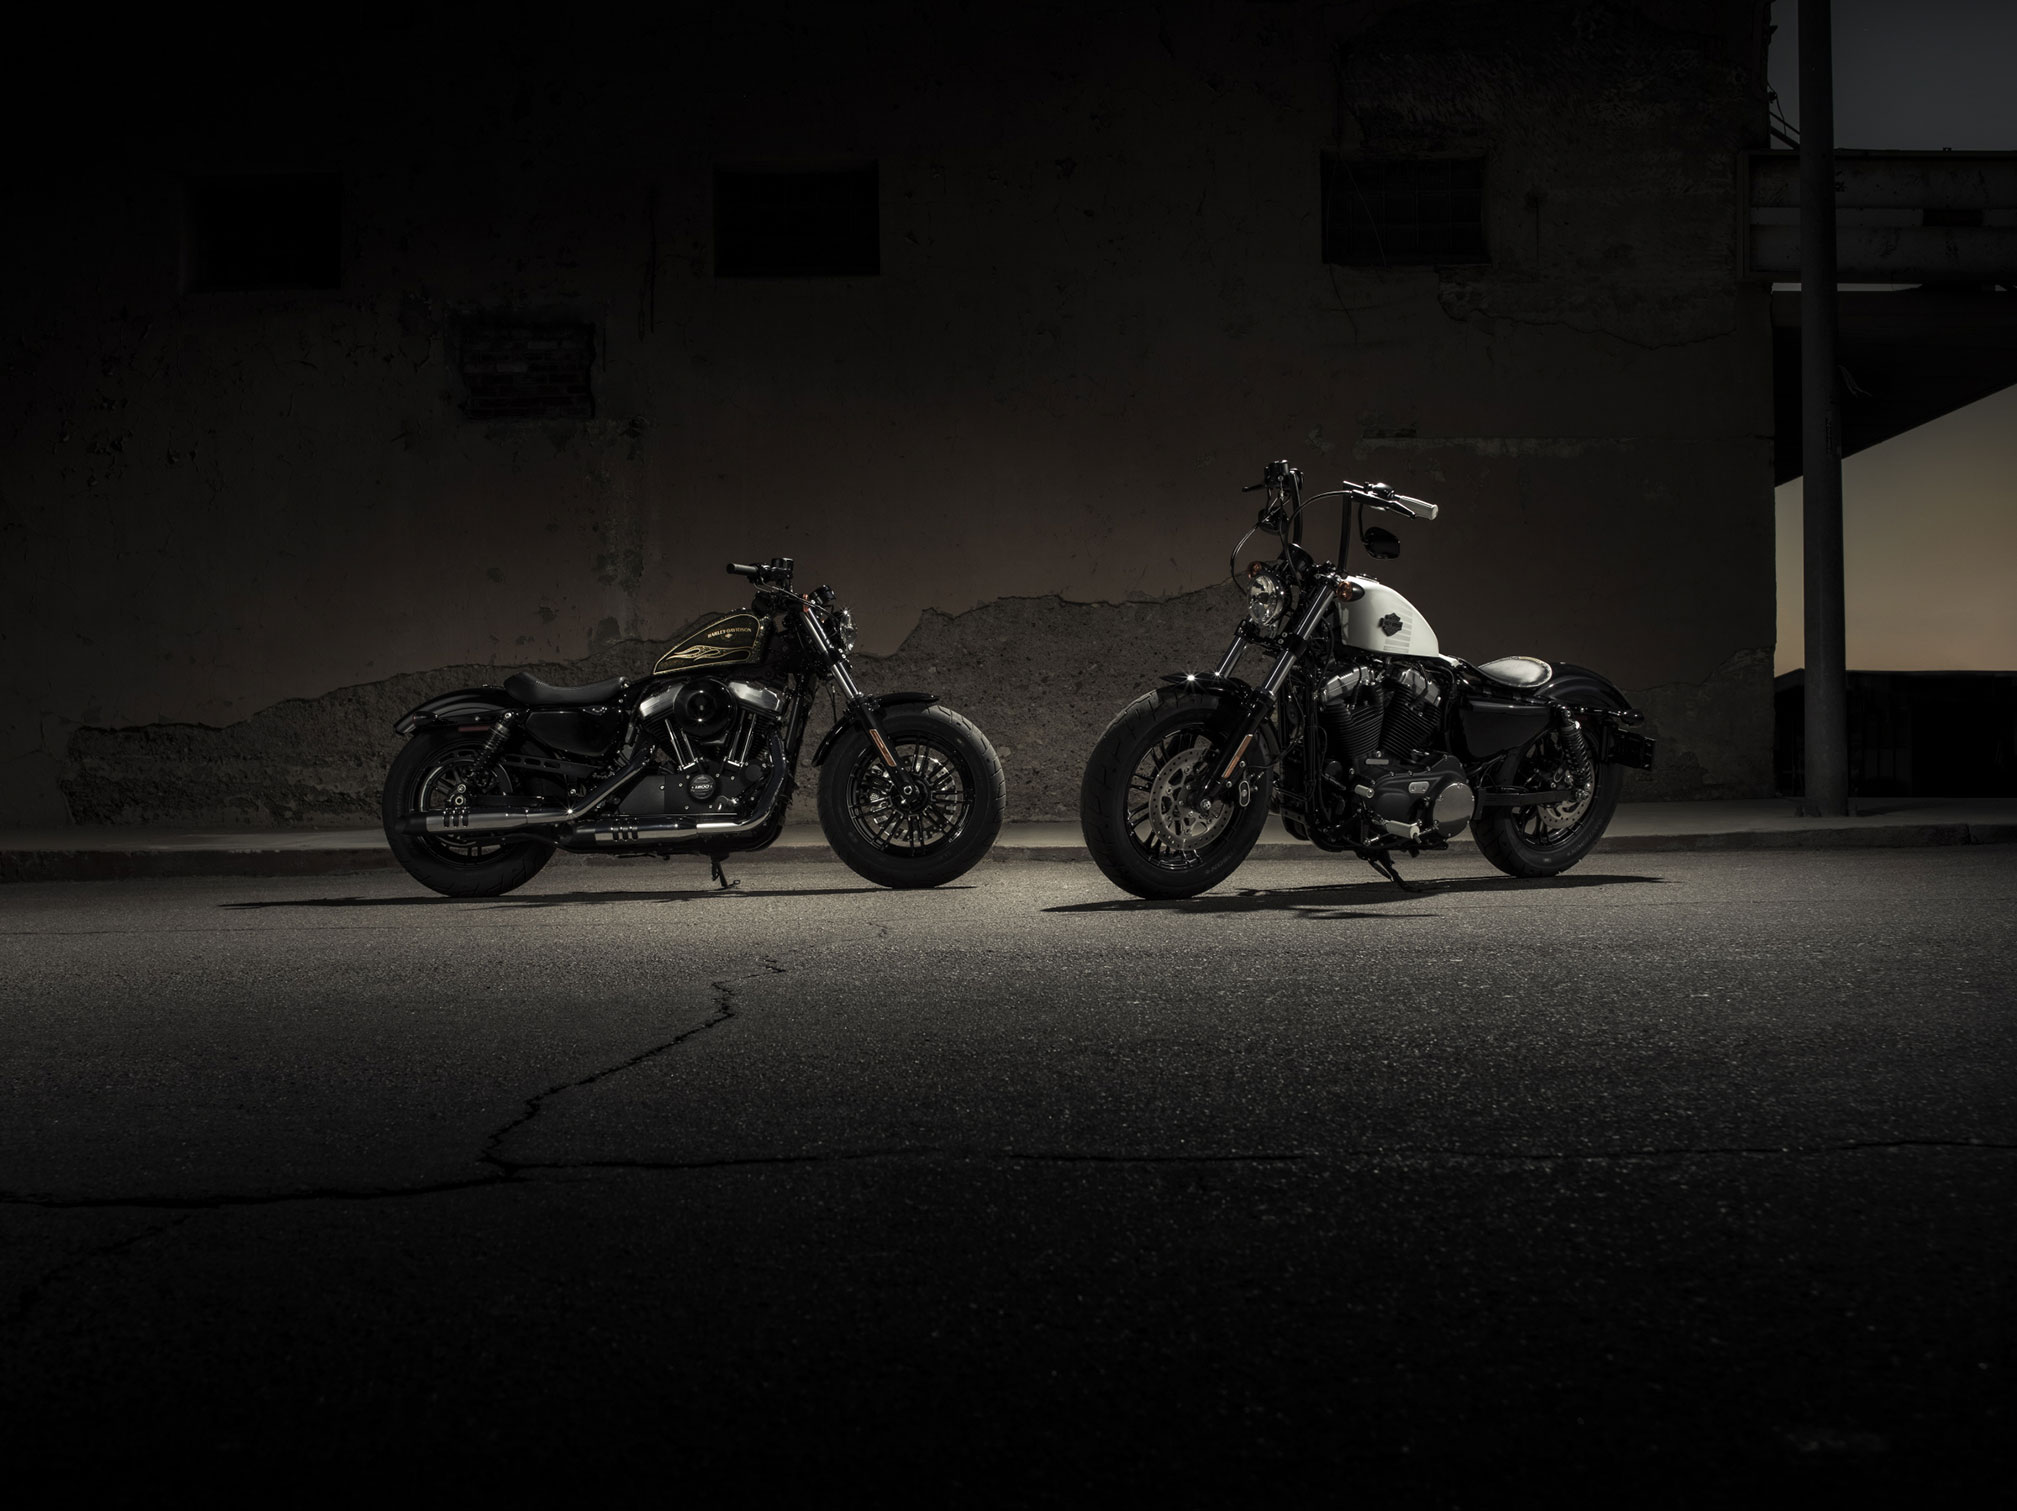 2017 Harley Davidson Forty Eight Full HD Wallpaper And Background